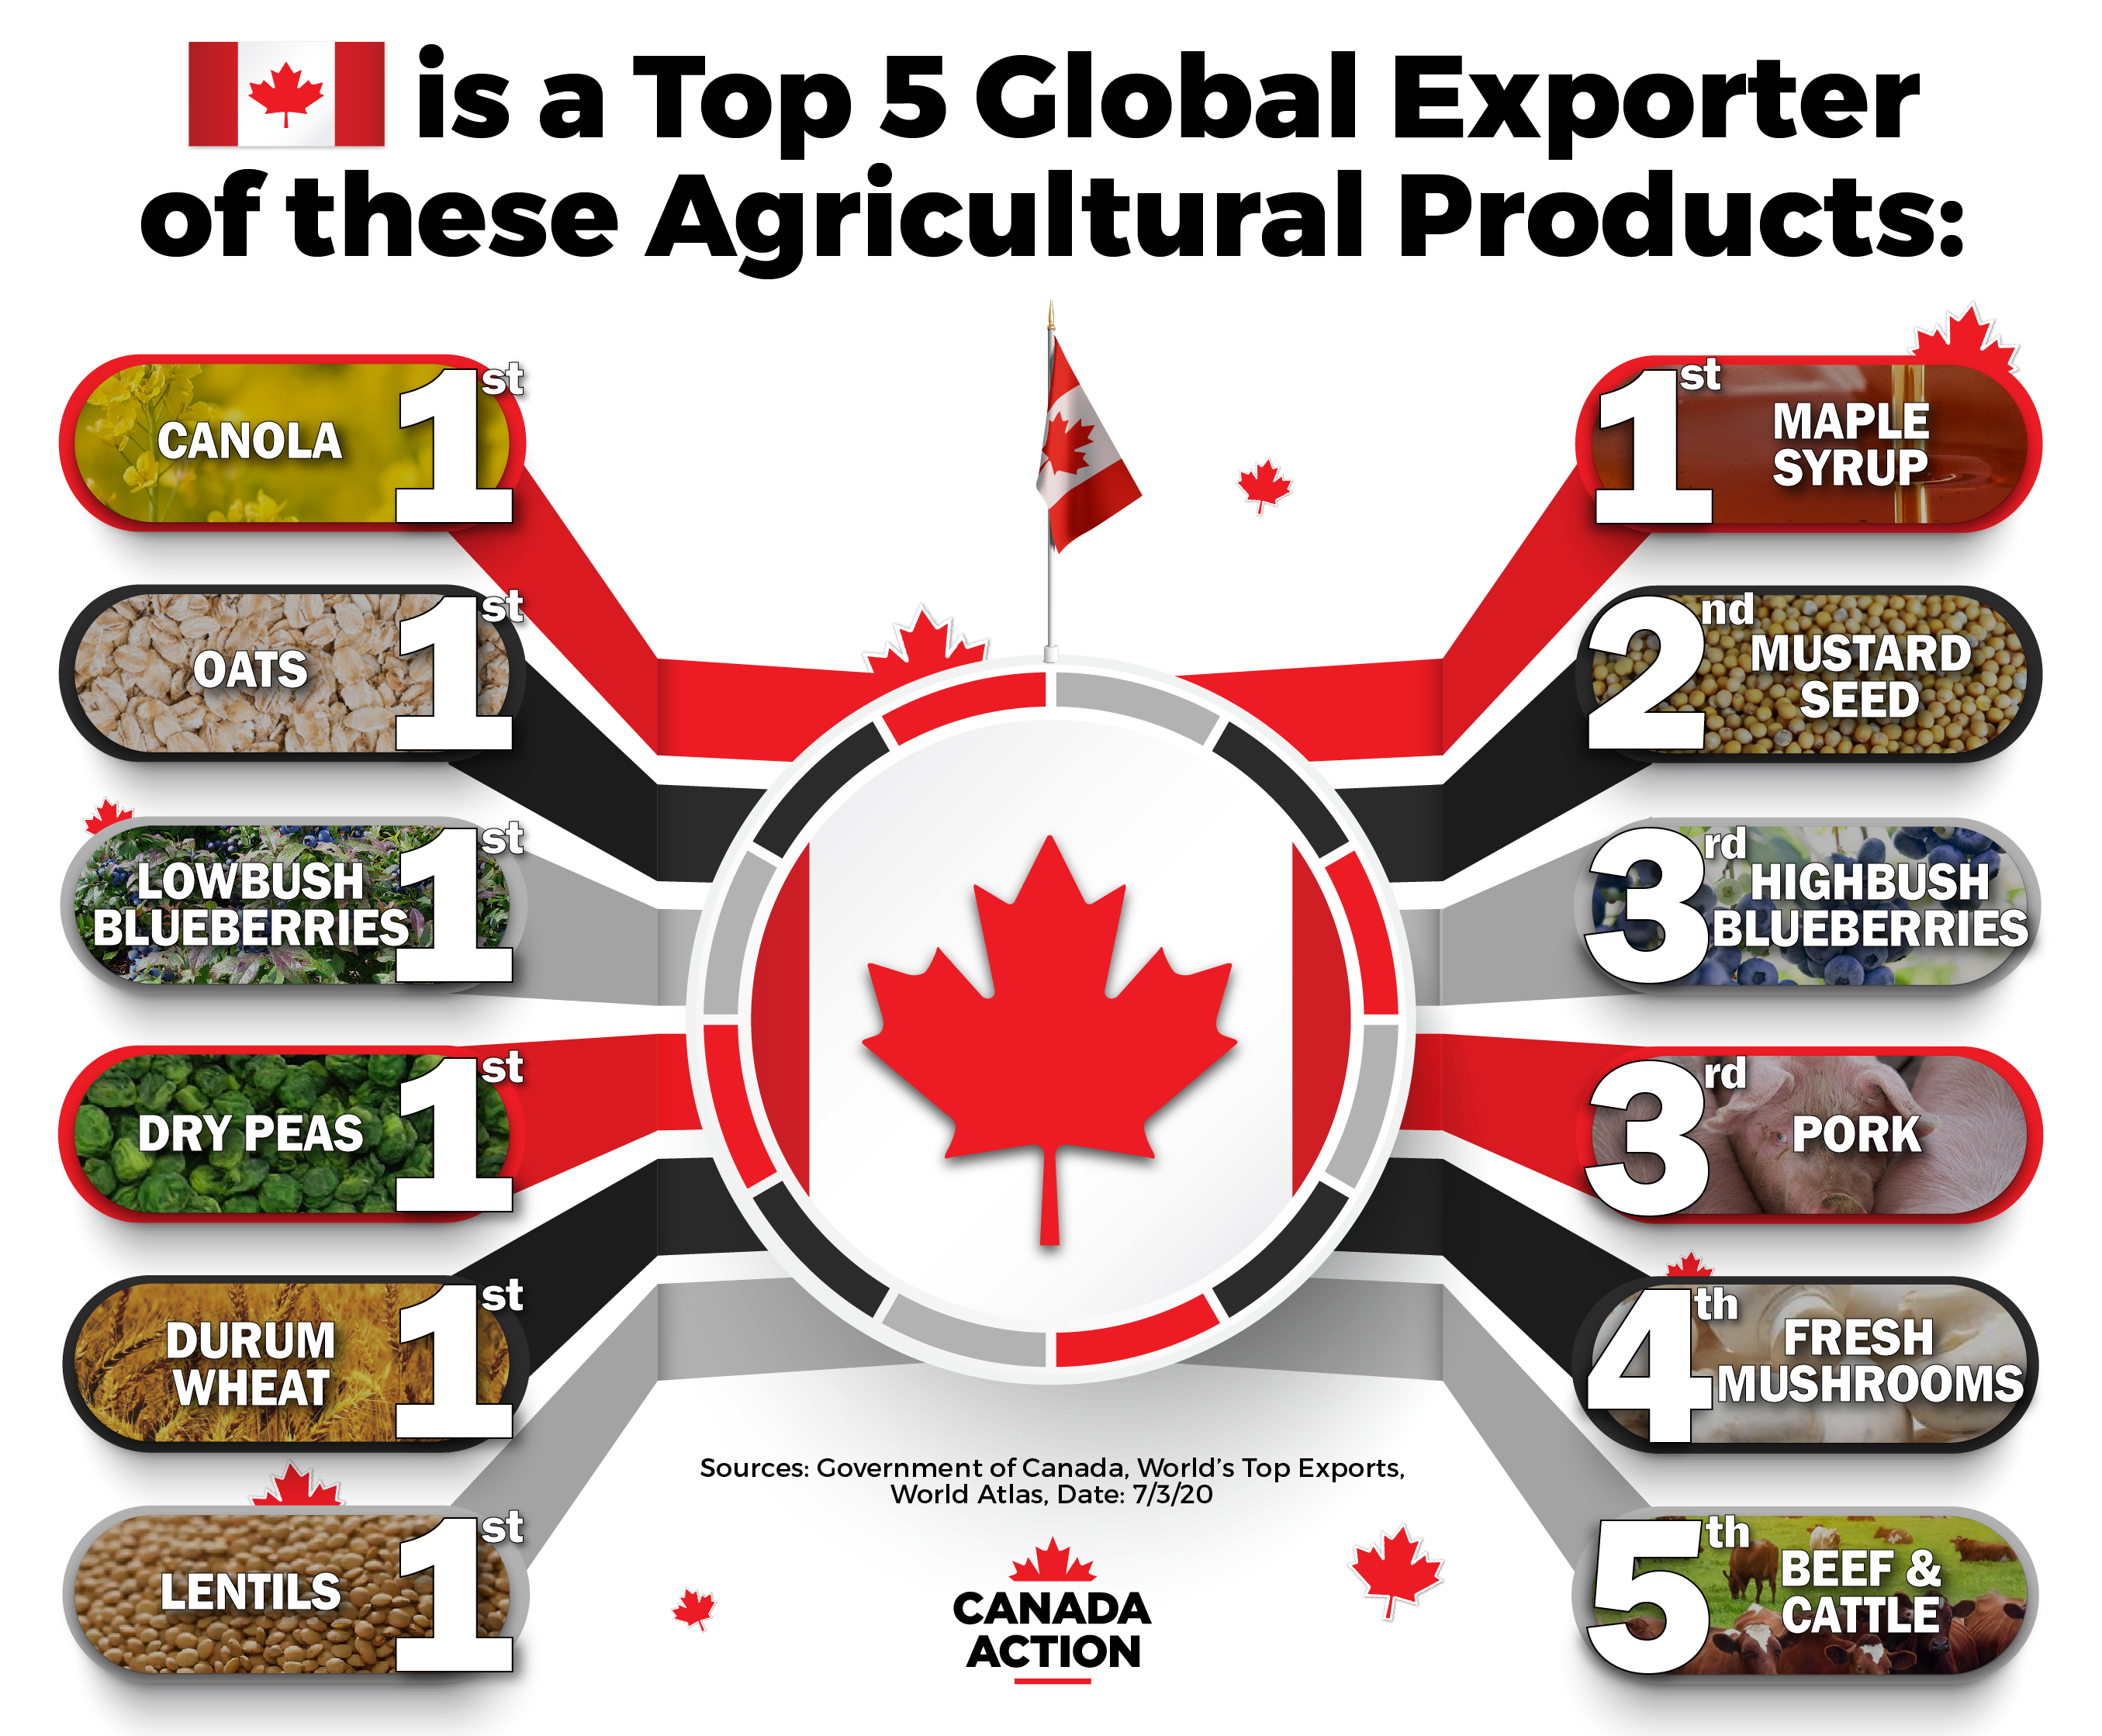 Canada is a top 10 global exporter of many agricultural products